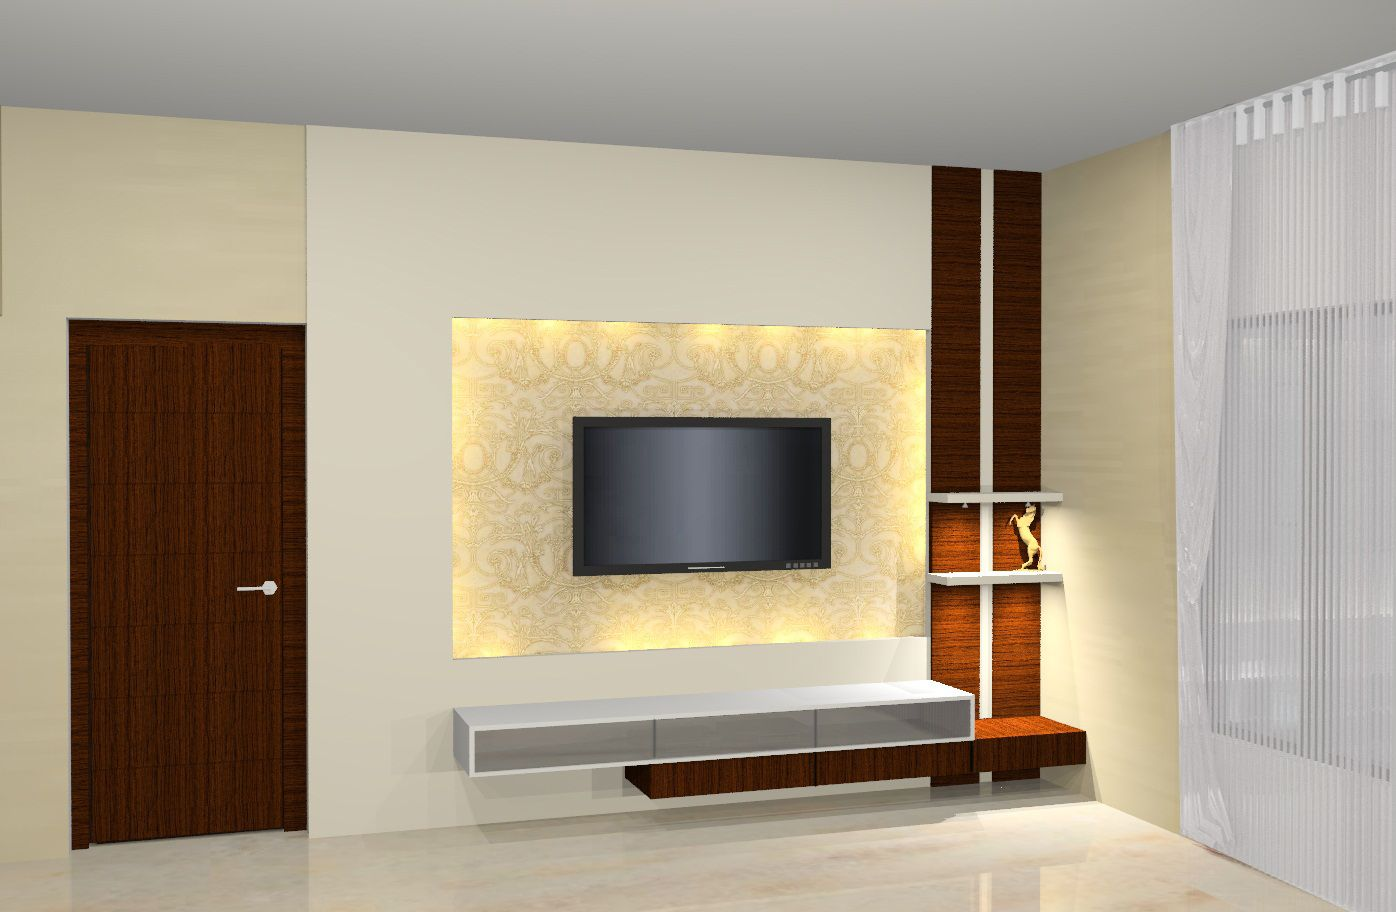 Tv Unit Designs Upper Family Families Tv Un